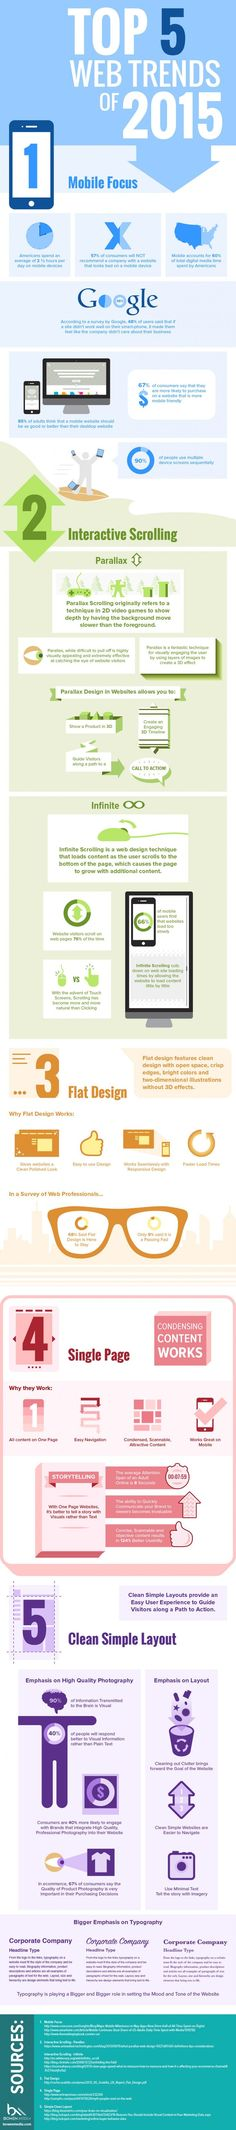 Top 5 Web Design Trends for 2015 (scheduled via http://www.tailwindapp.com?utm_source=pinterest&utm_medium=twpin&utm_content=post272191&utm_campaign=scheduler_attribution)